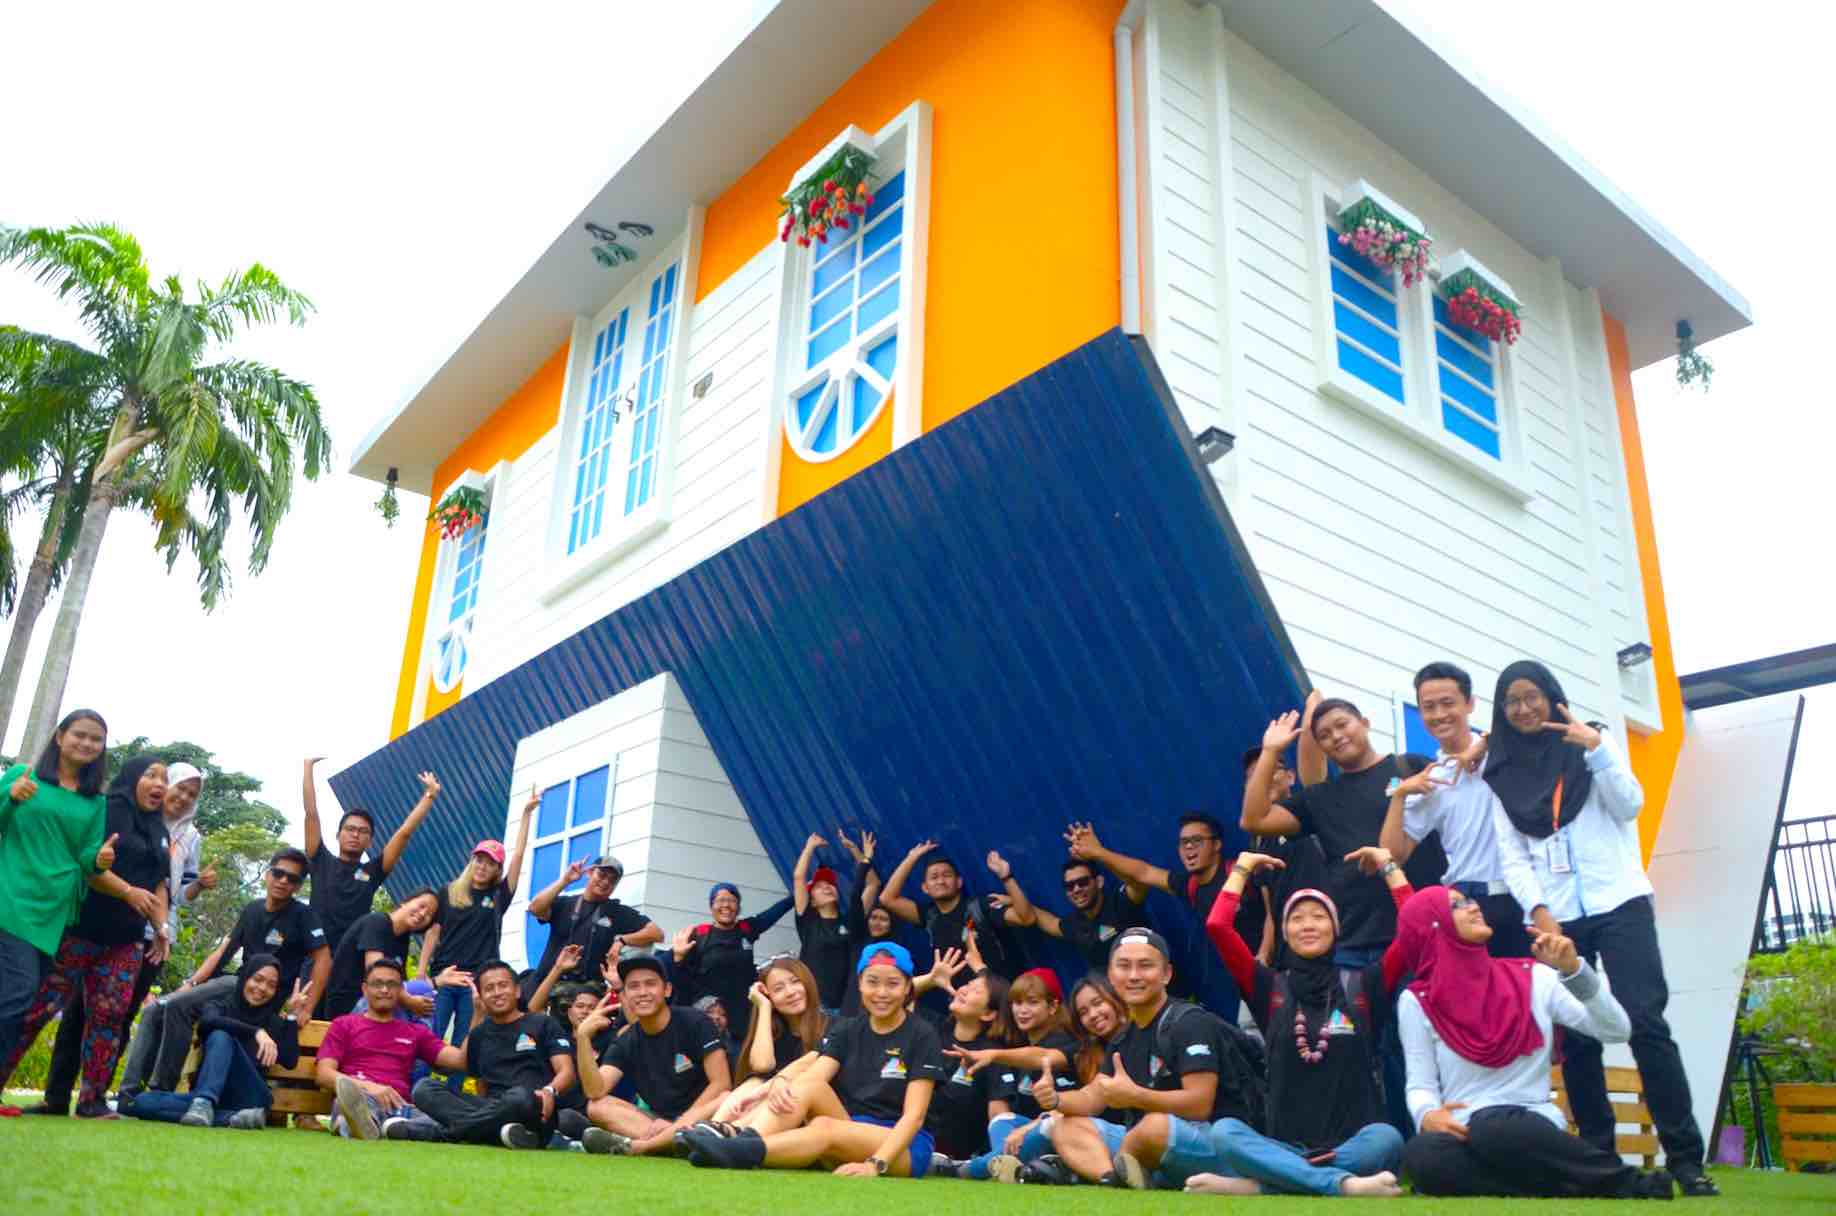 everyone-enjoyed-themselves-at-kl-upside-down-house-aspirantsg